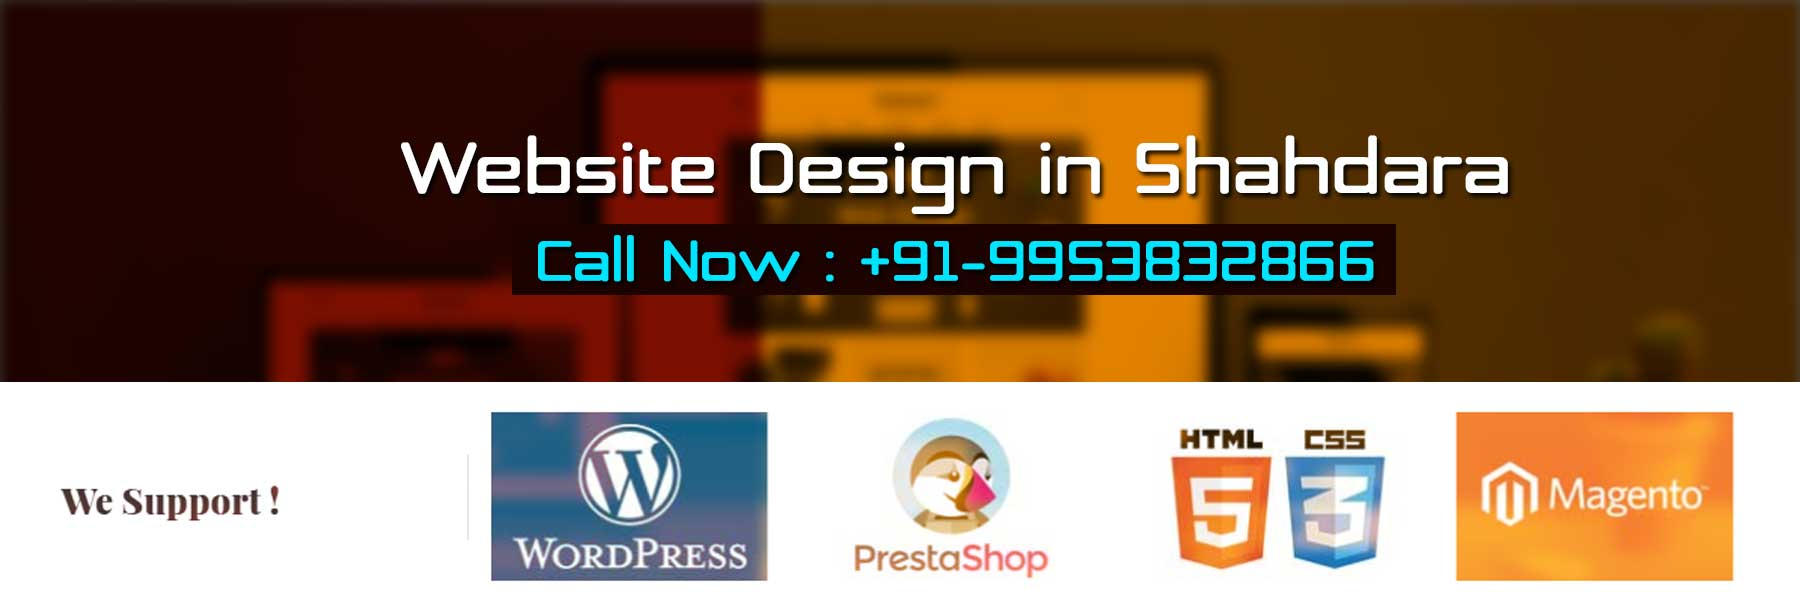 Website Design in Shahdara